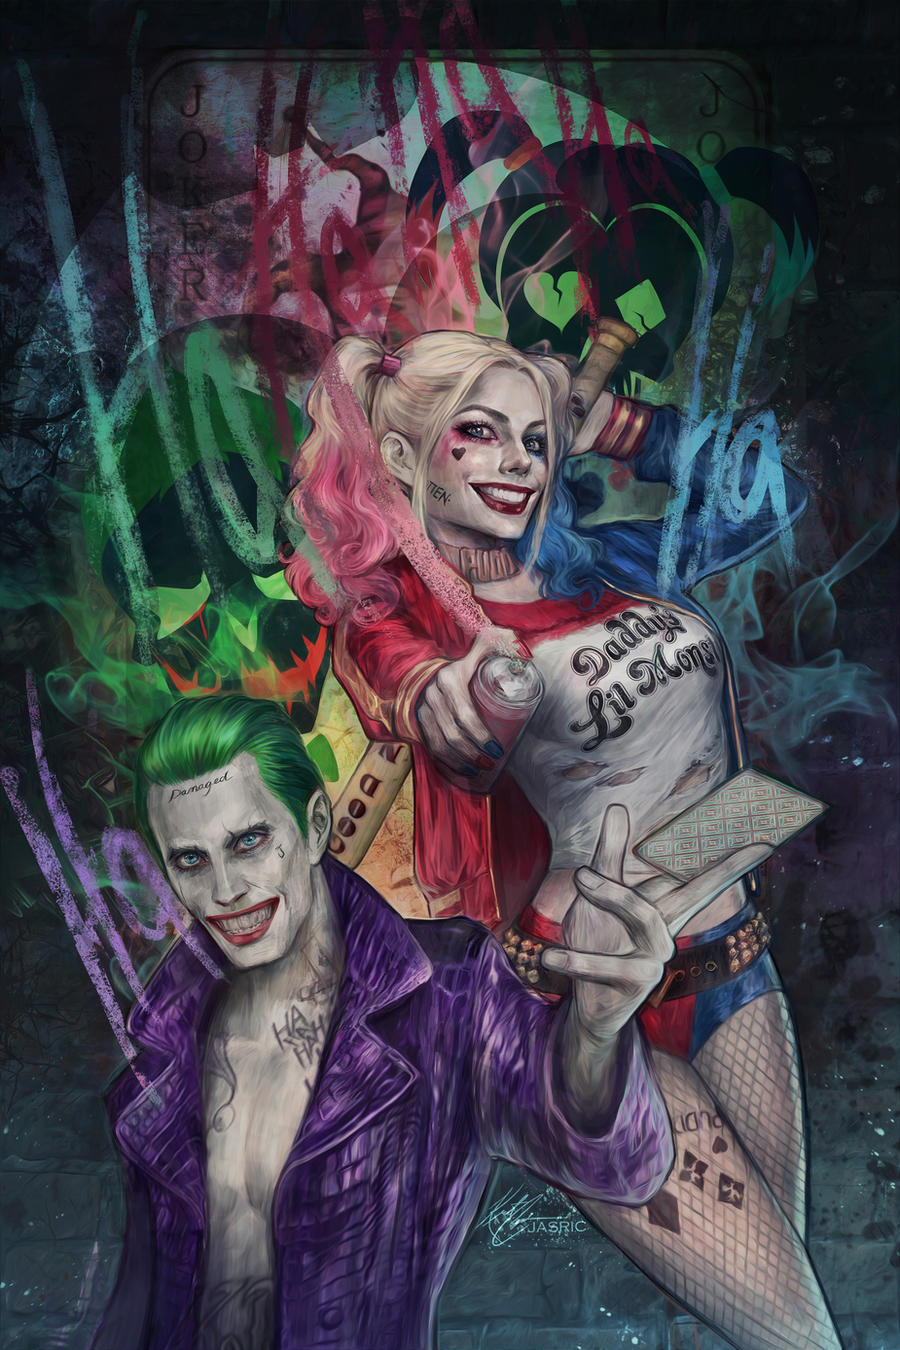 Joker and harley suicide squad by jasric on deviantart for Joker immagini hd